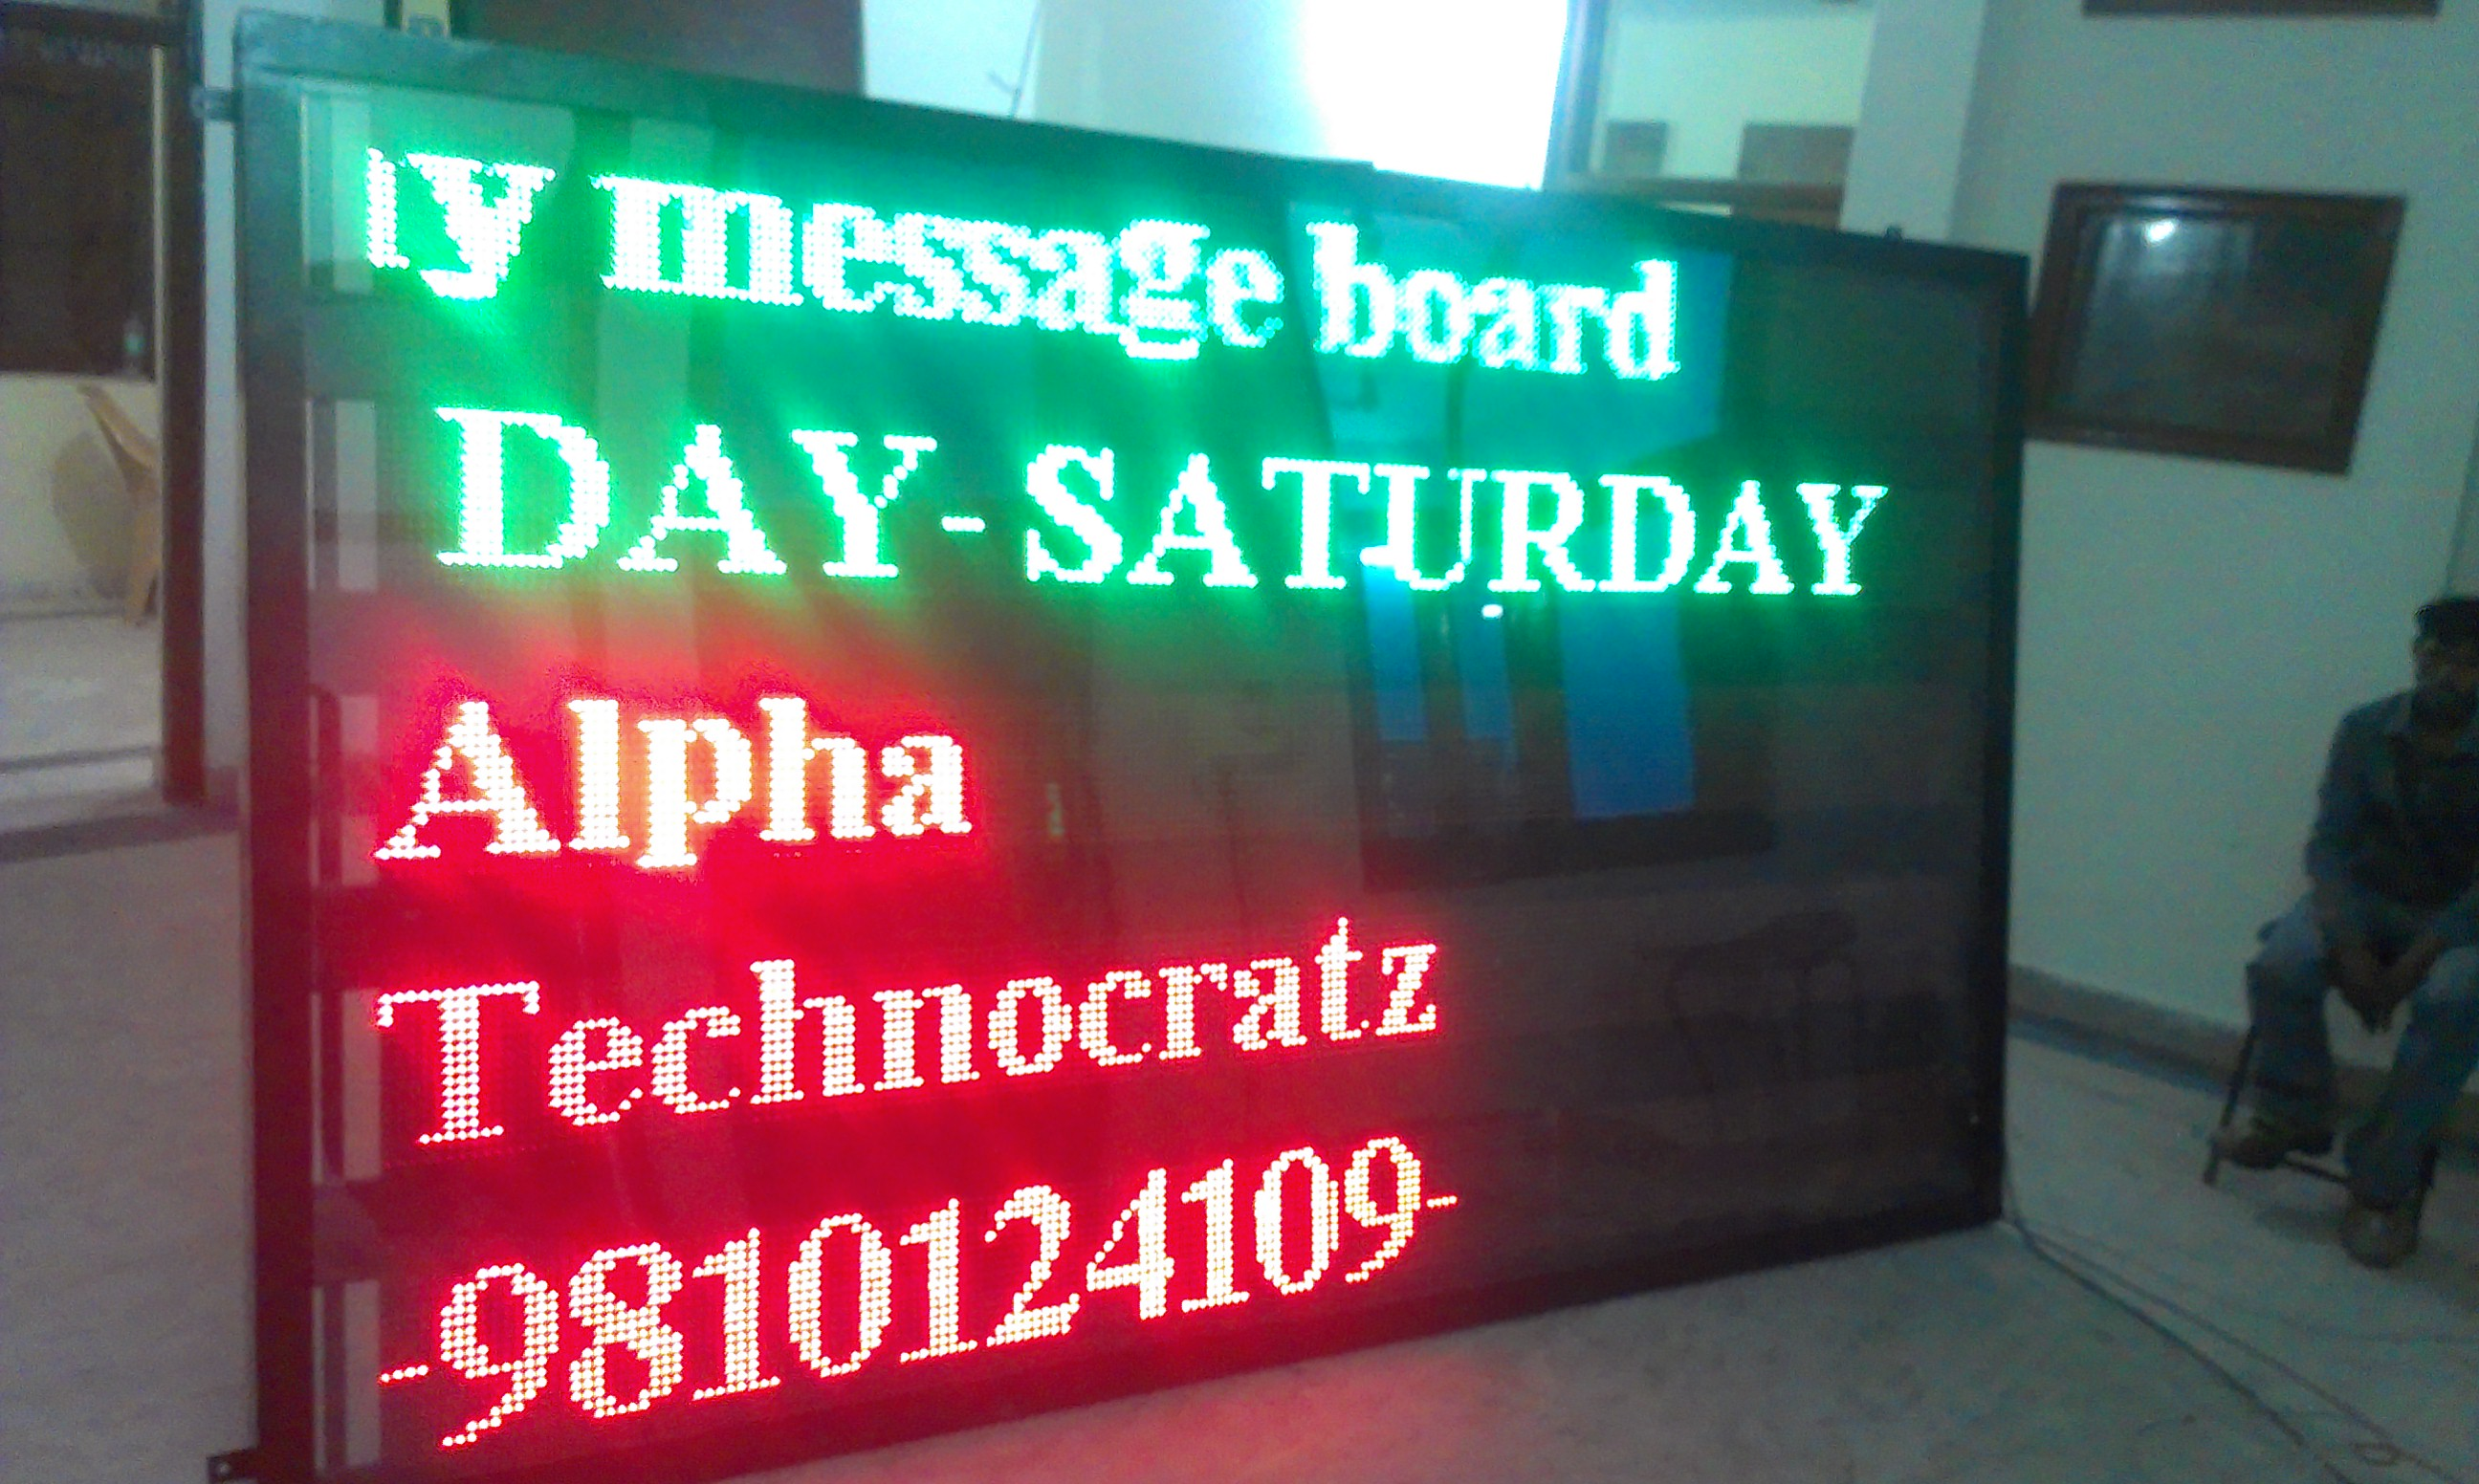 led display board multicolor multiline